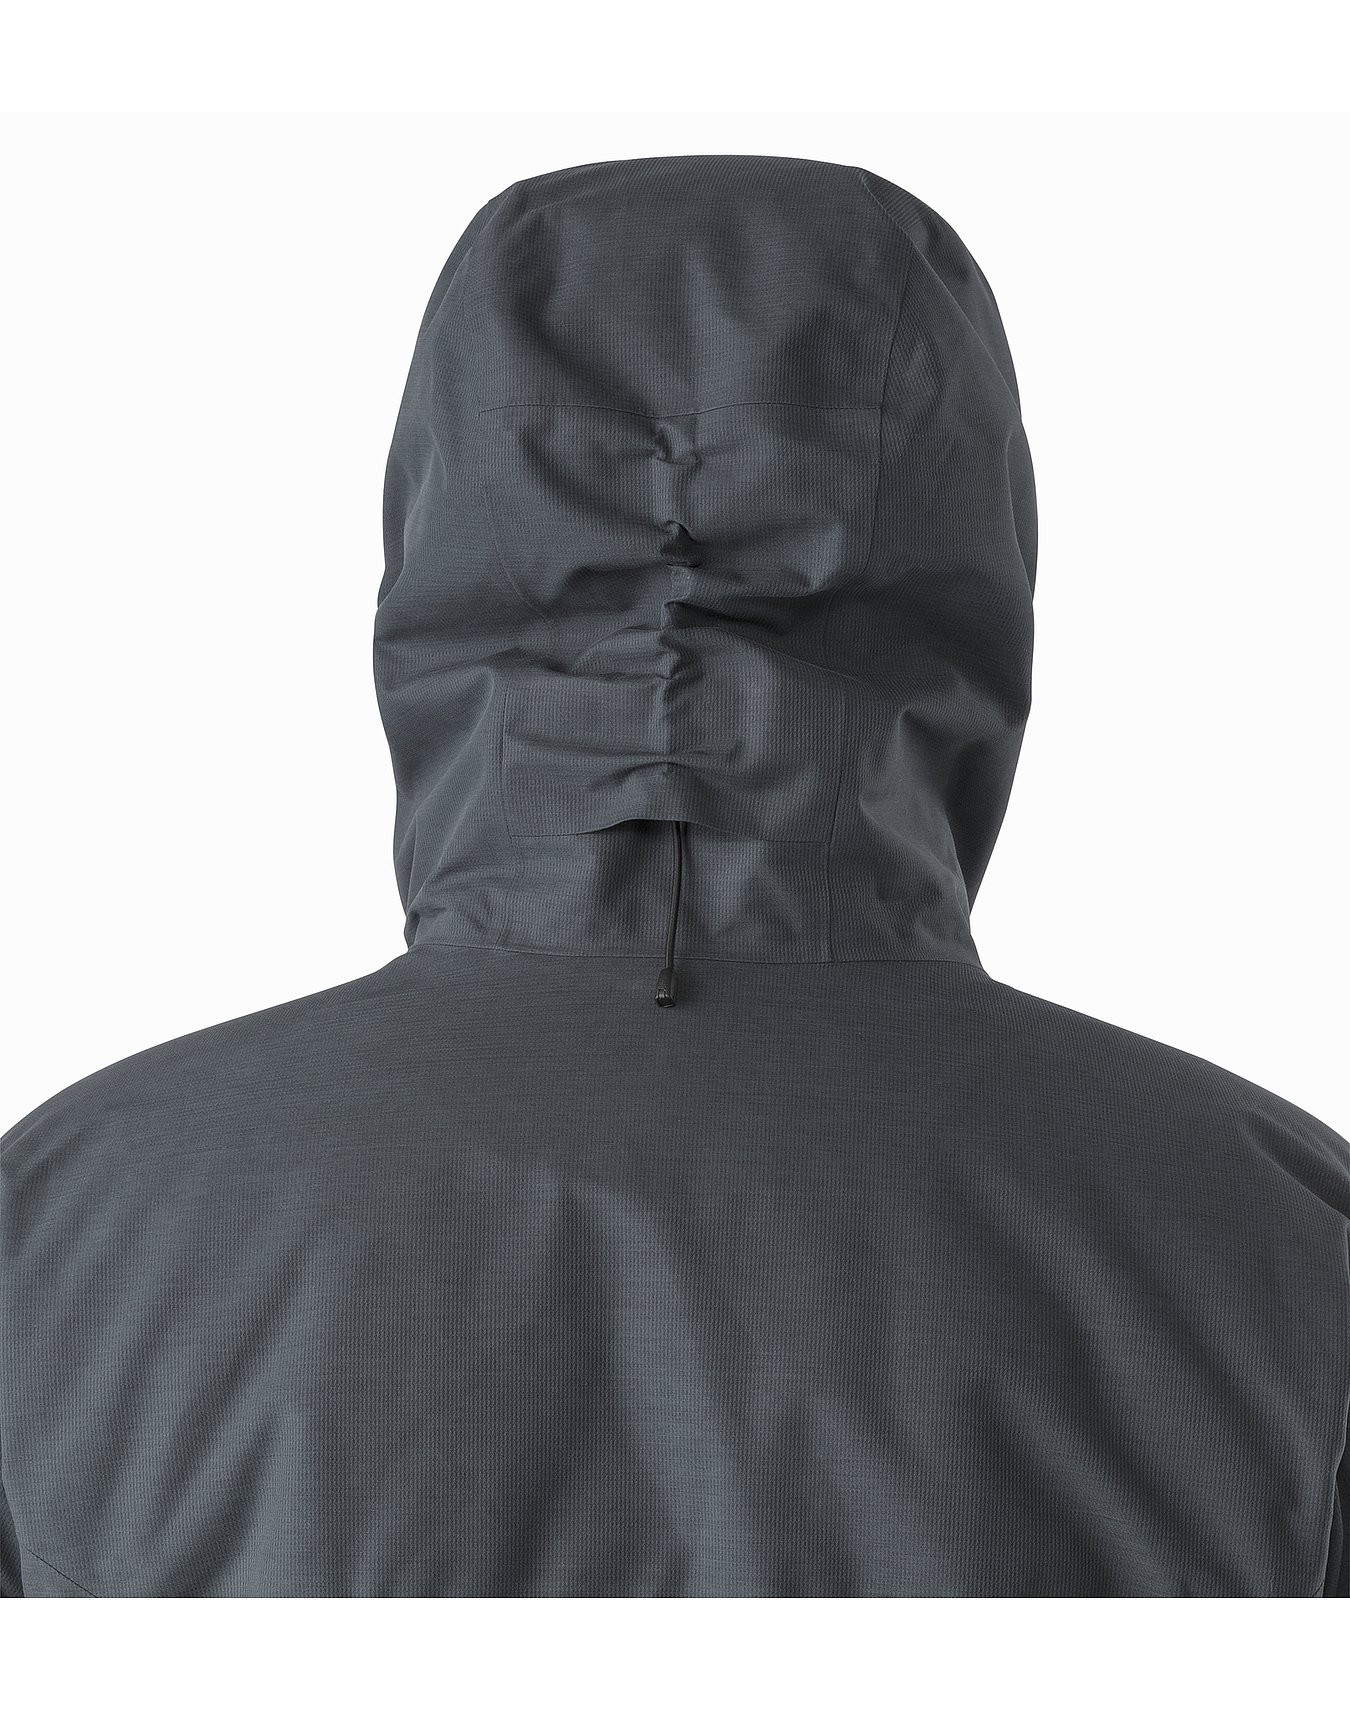 97fd2965dbd Arc'teryx Therme Parka Men's Black